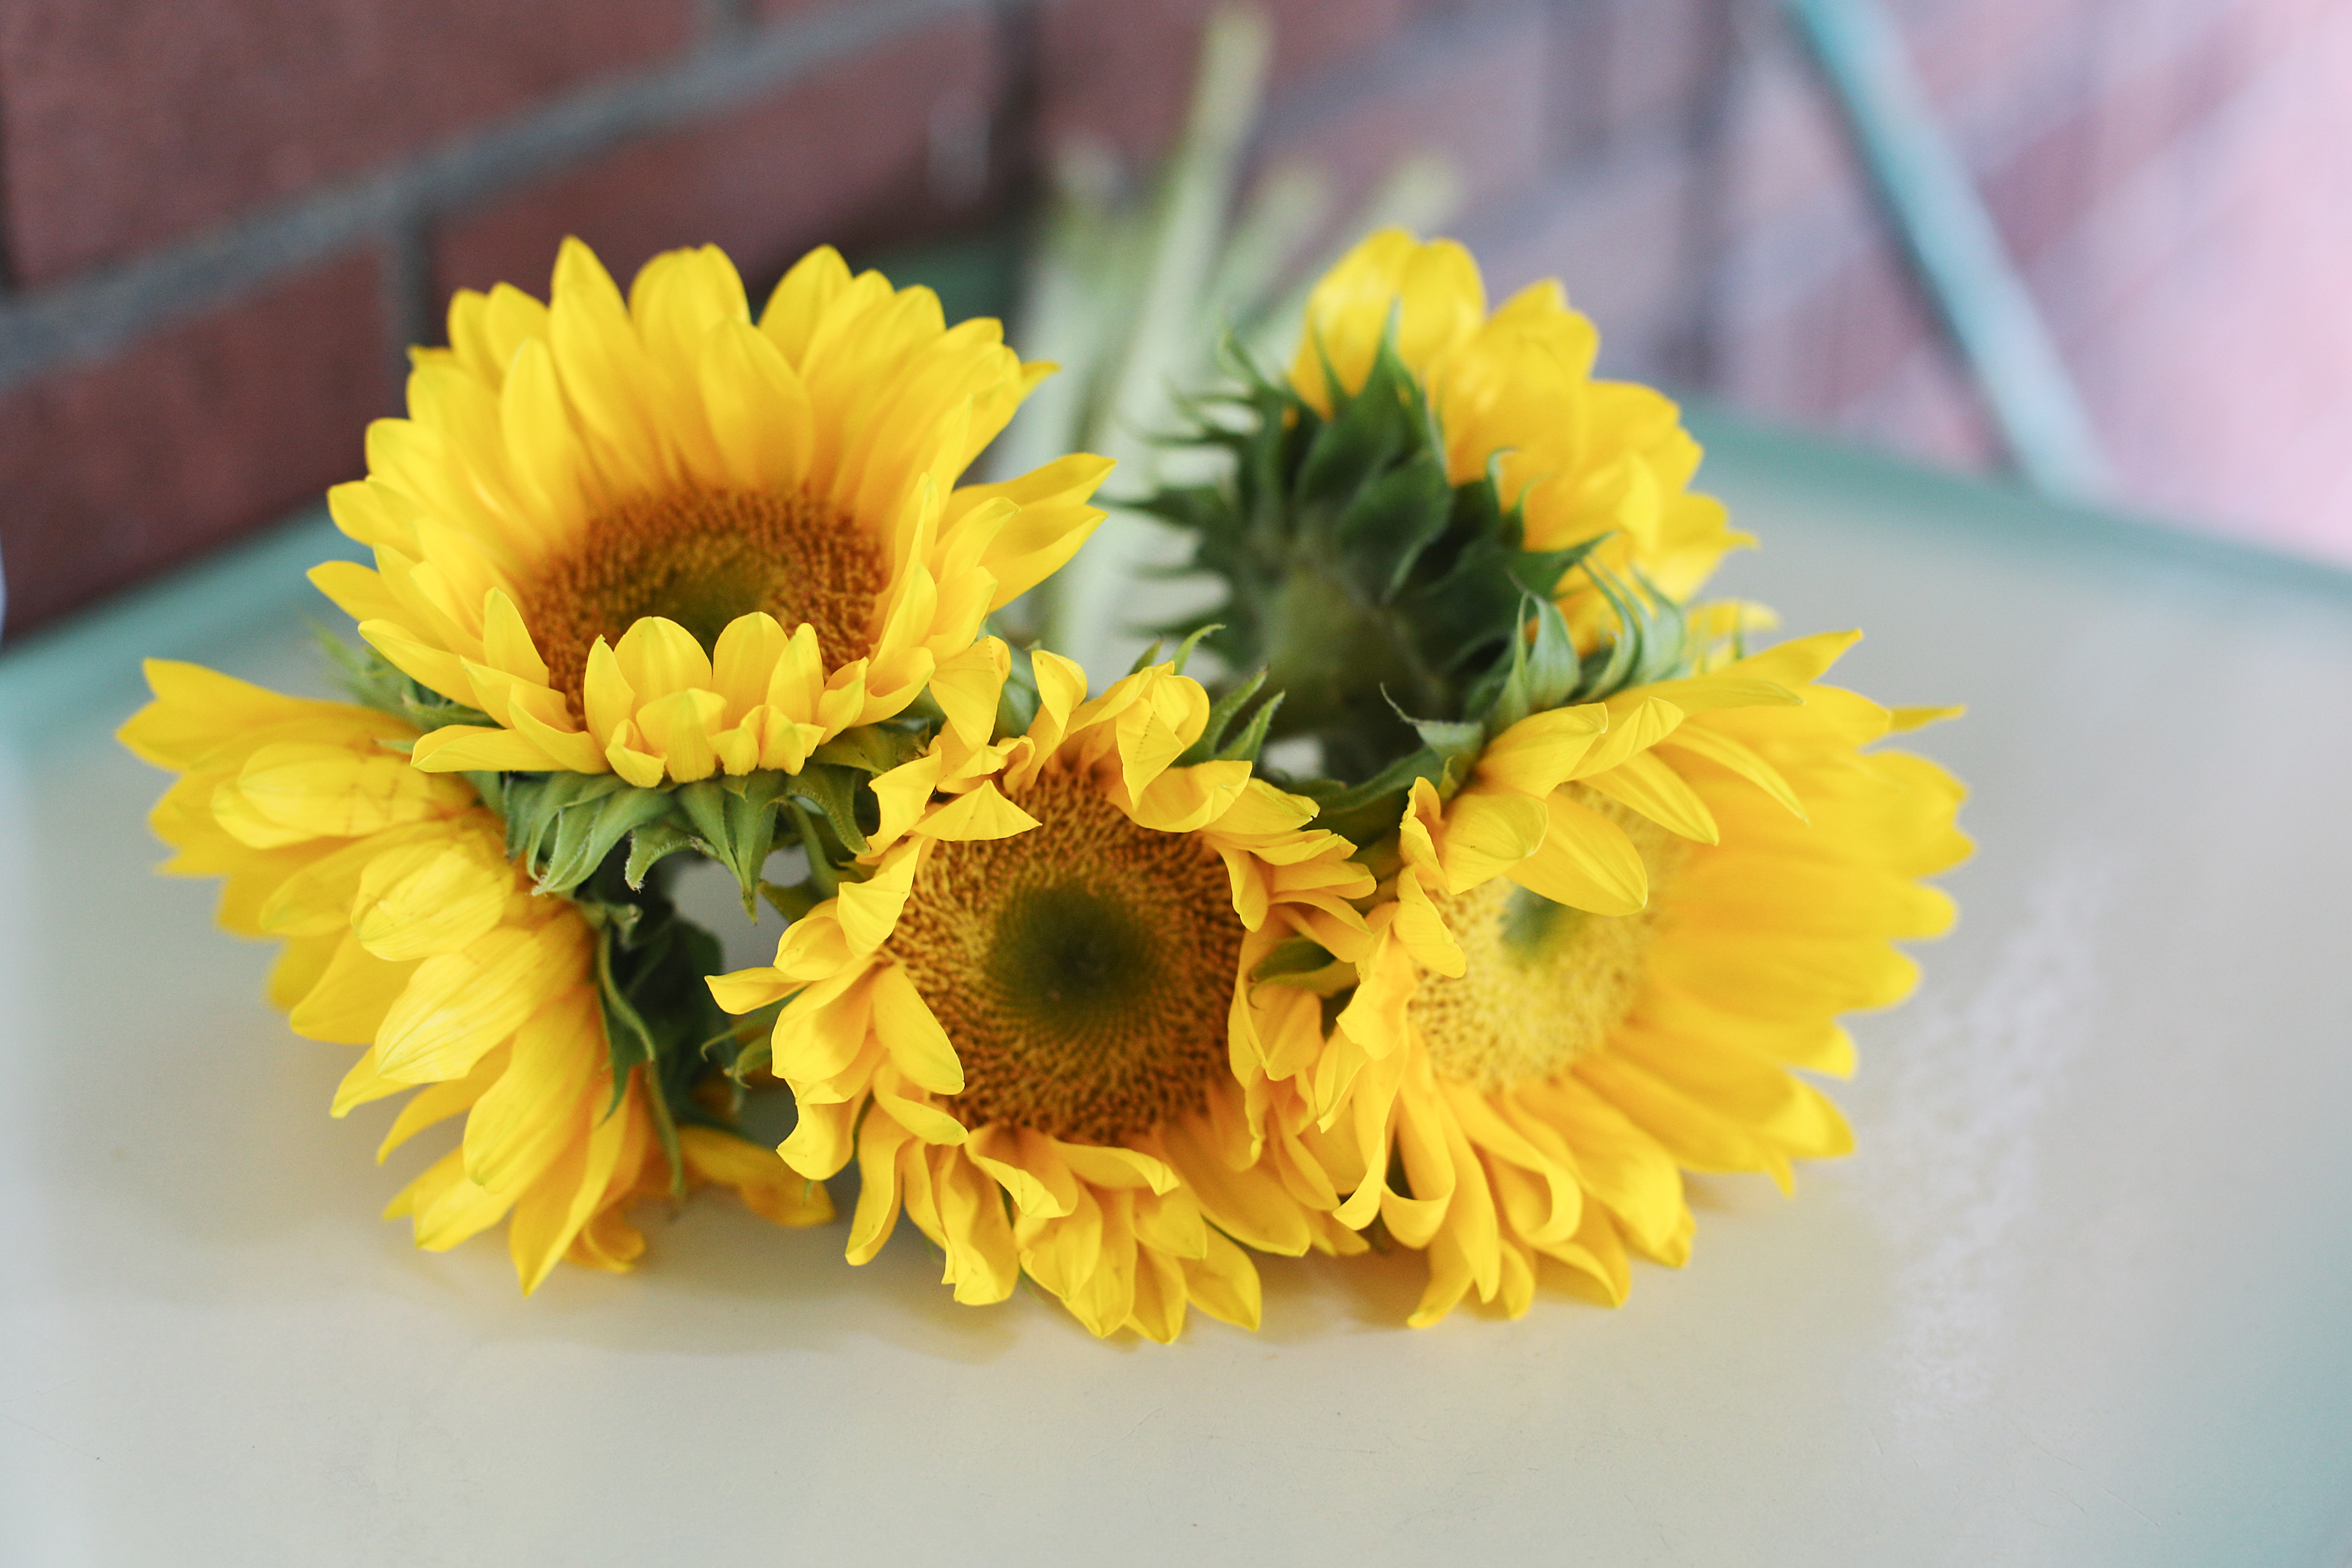 What Should You Do With Sunflowers After They Bloom? | Hunker